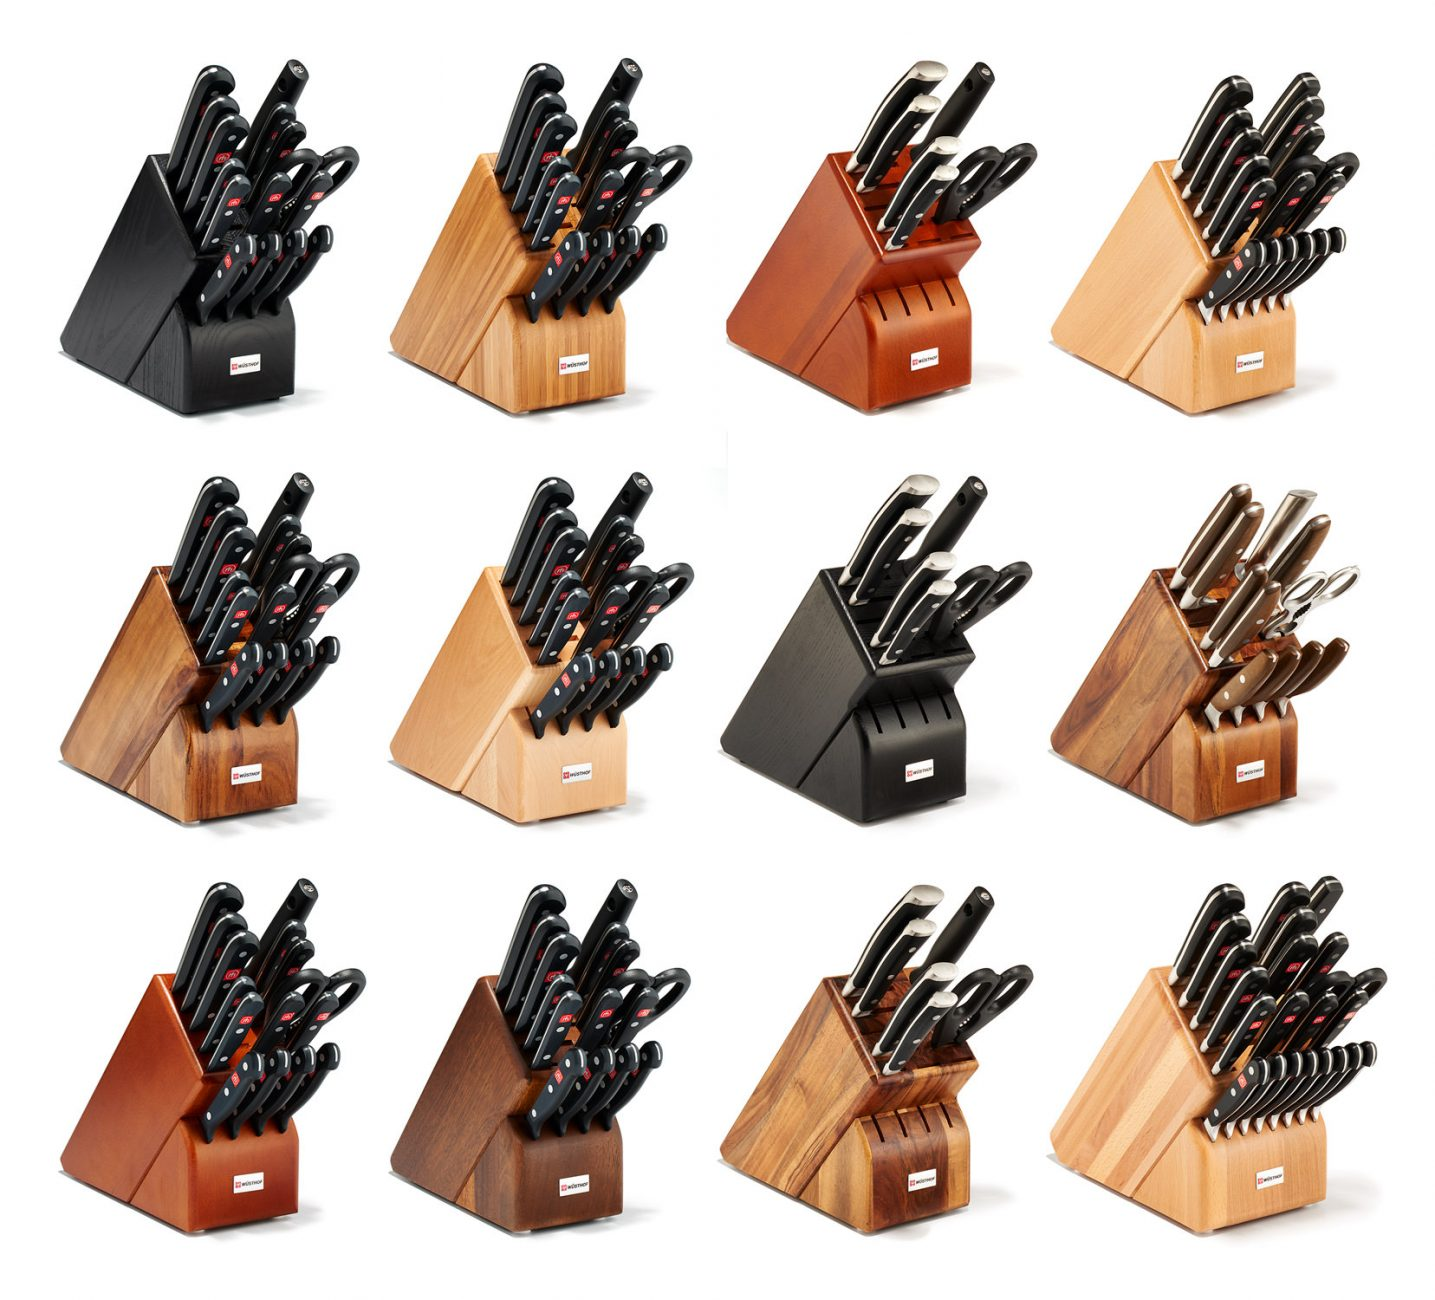 wusthof knife block sets; product photography by jeff cords